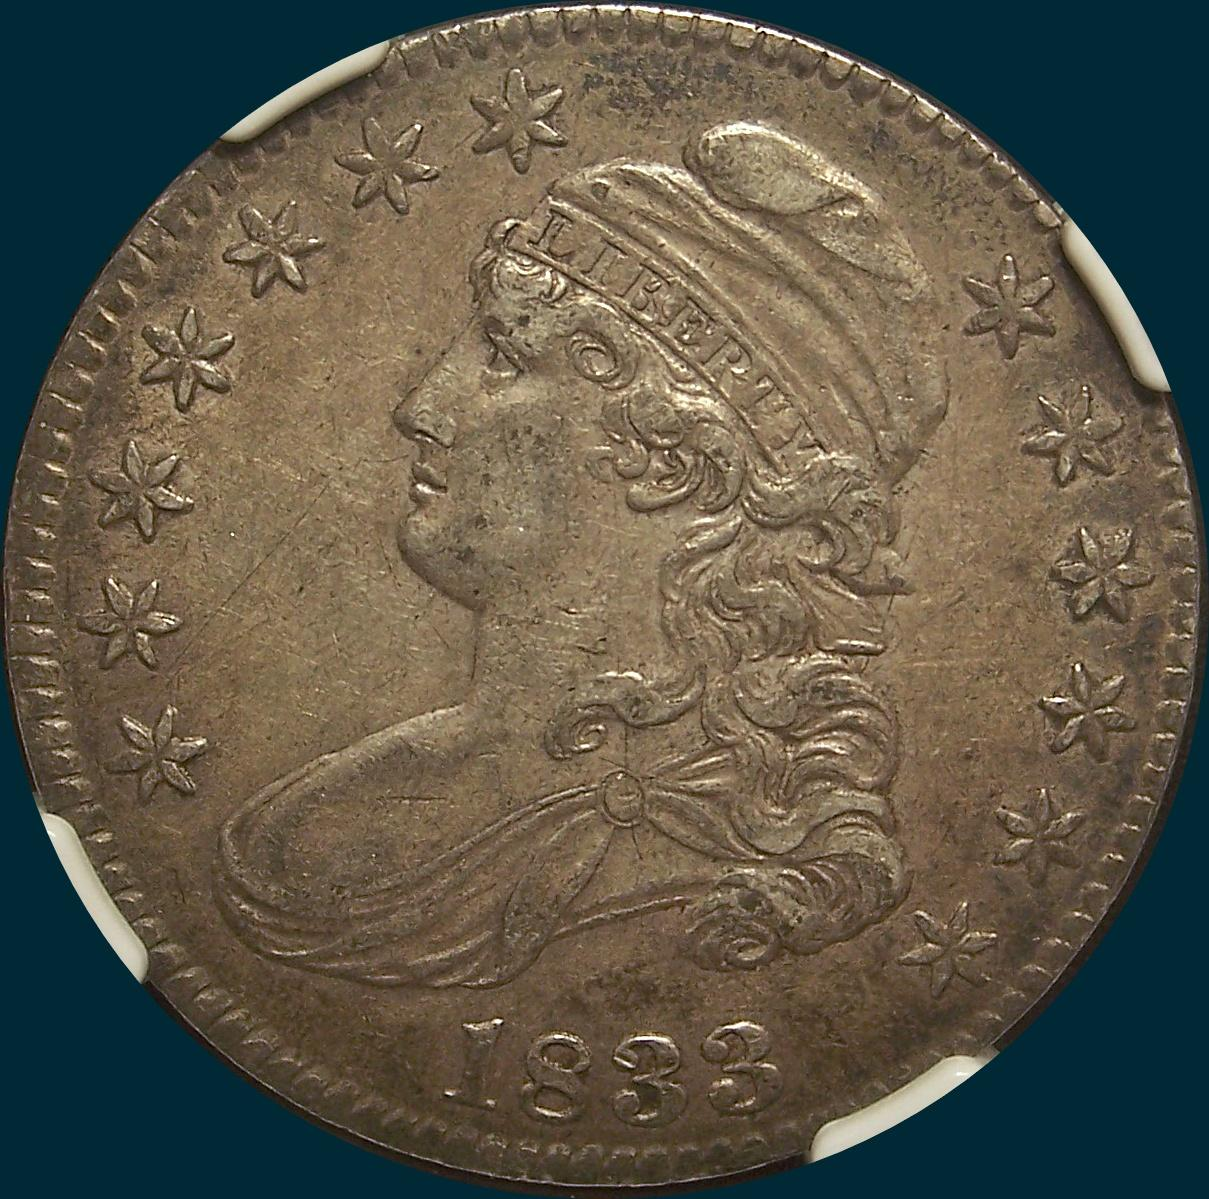 1833 O-113, capped bust half dollar